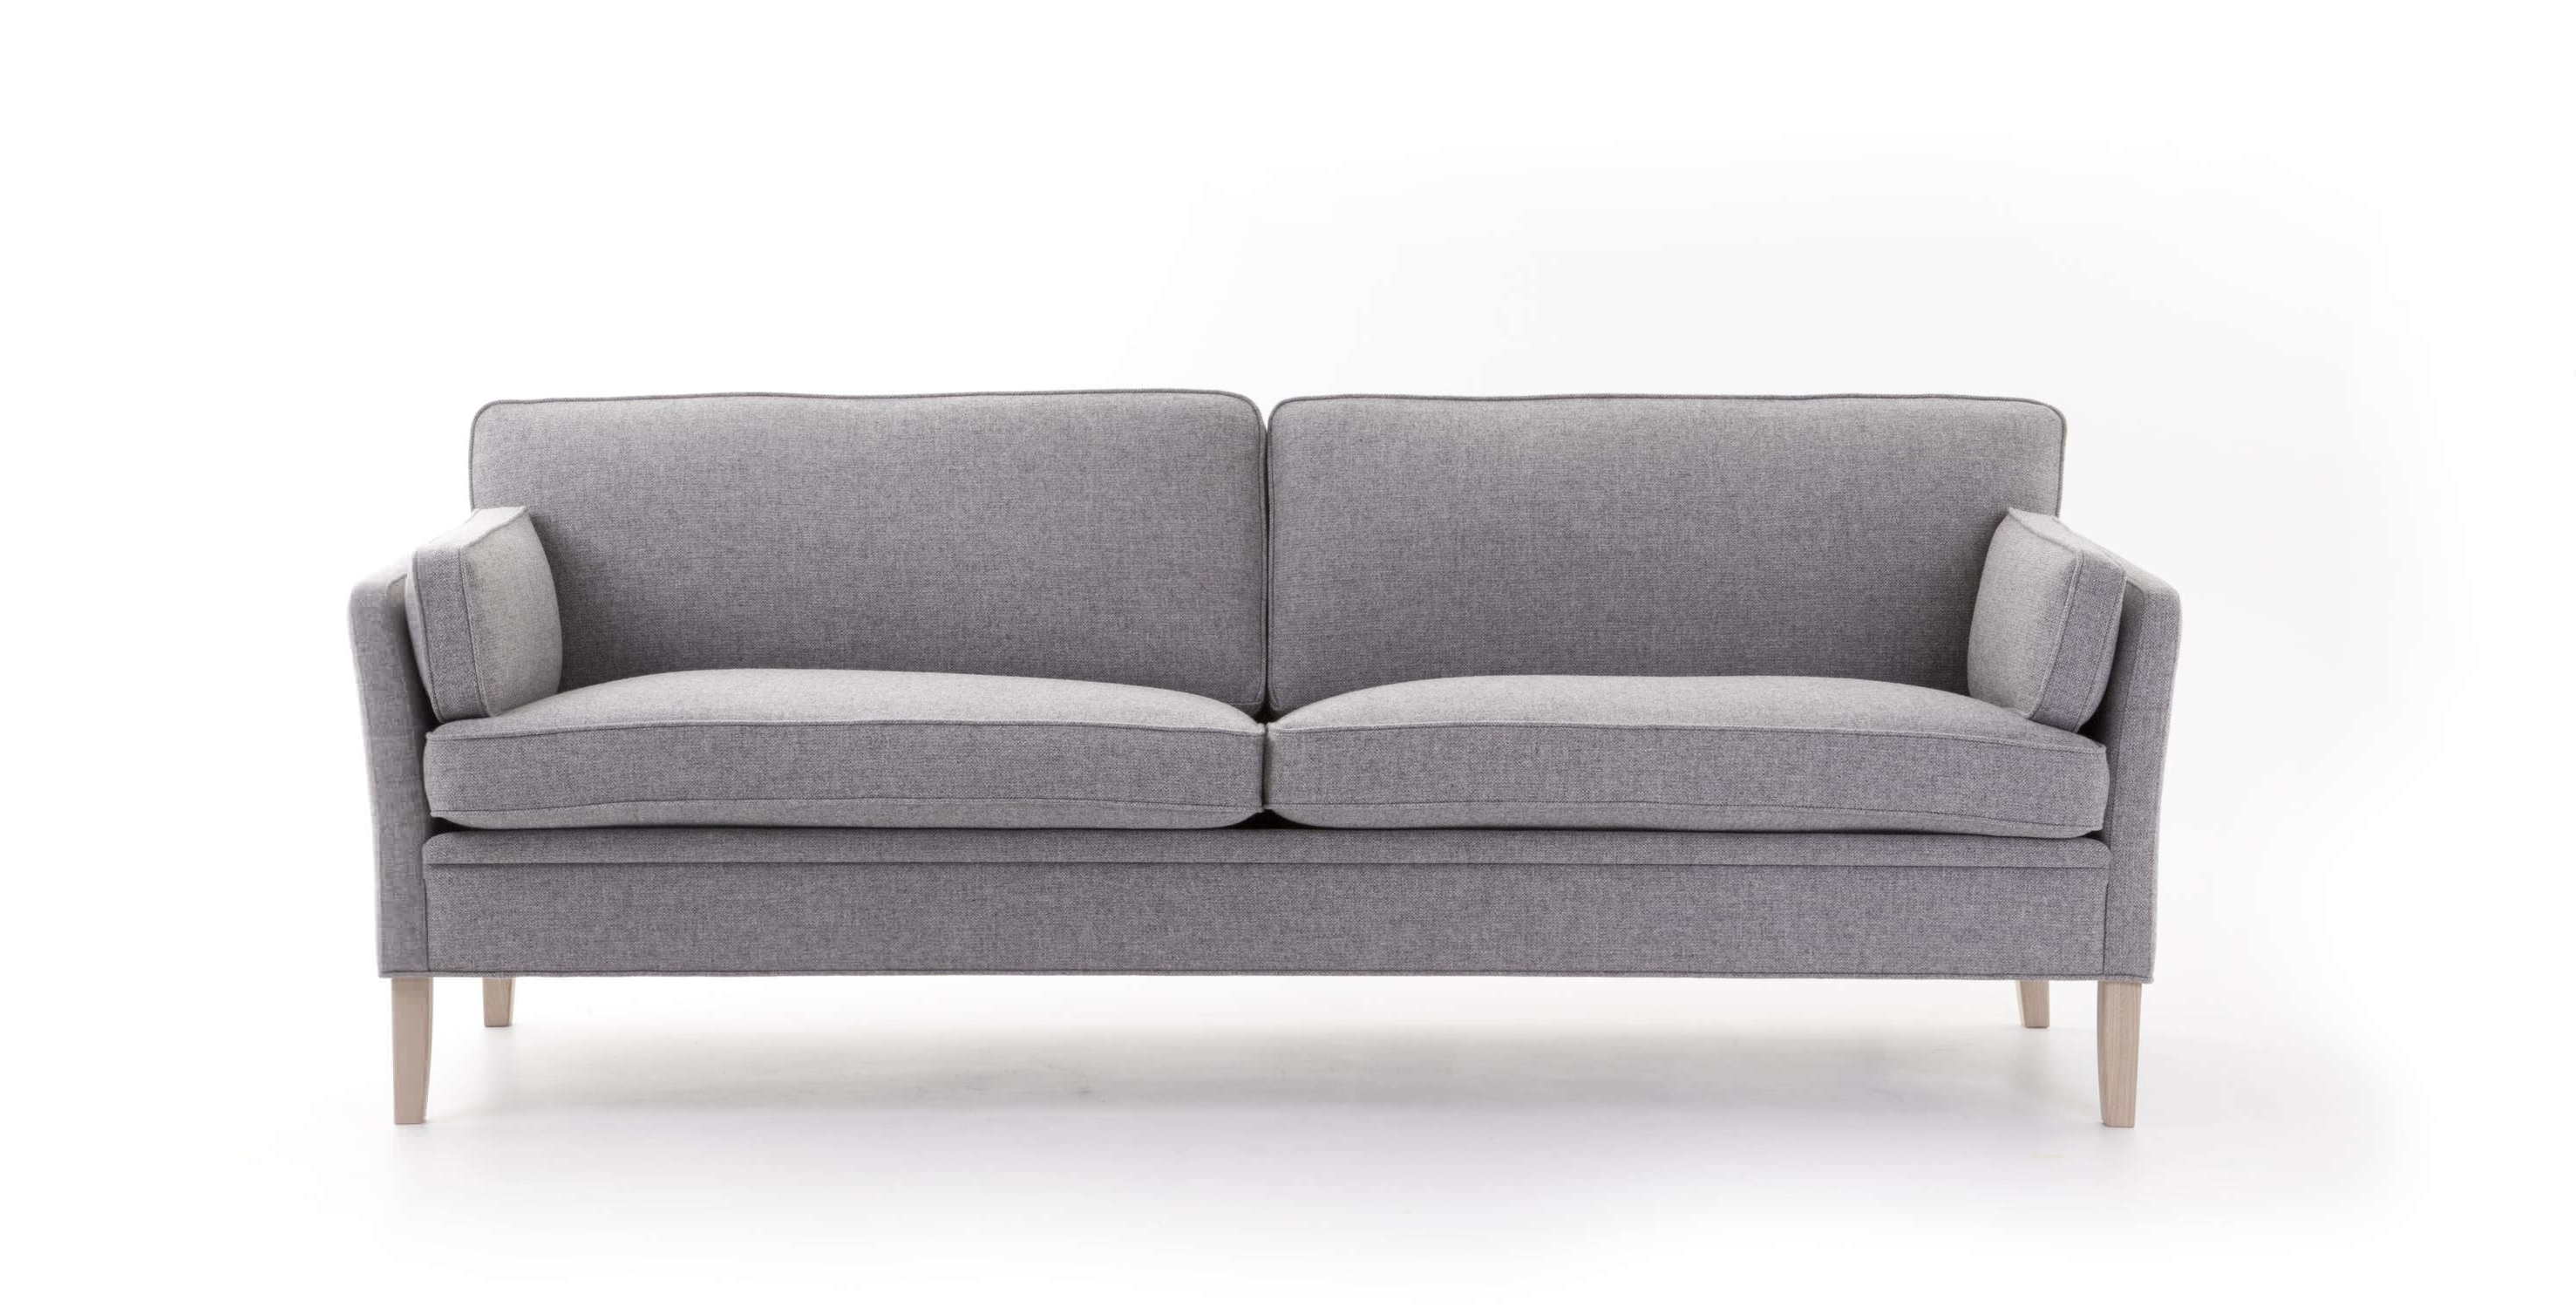 Well Known Sofas With Removable Cover Intended For Removable Cover Sofa – Home And Textiles (View 4 of 20)